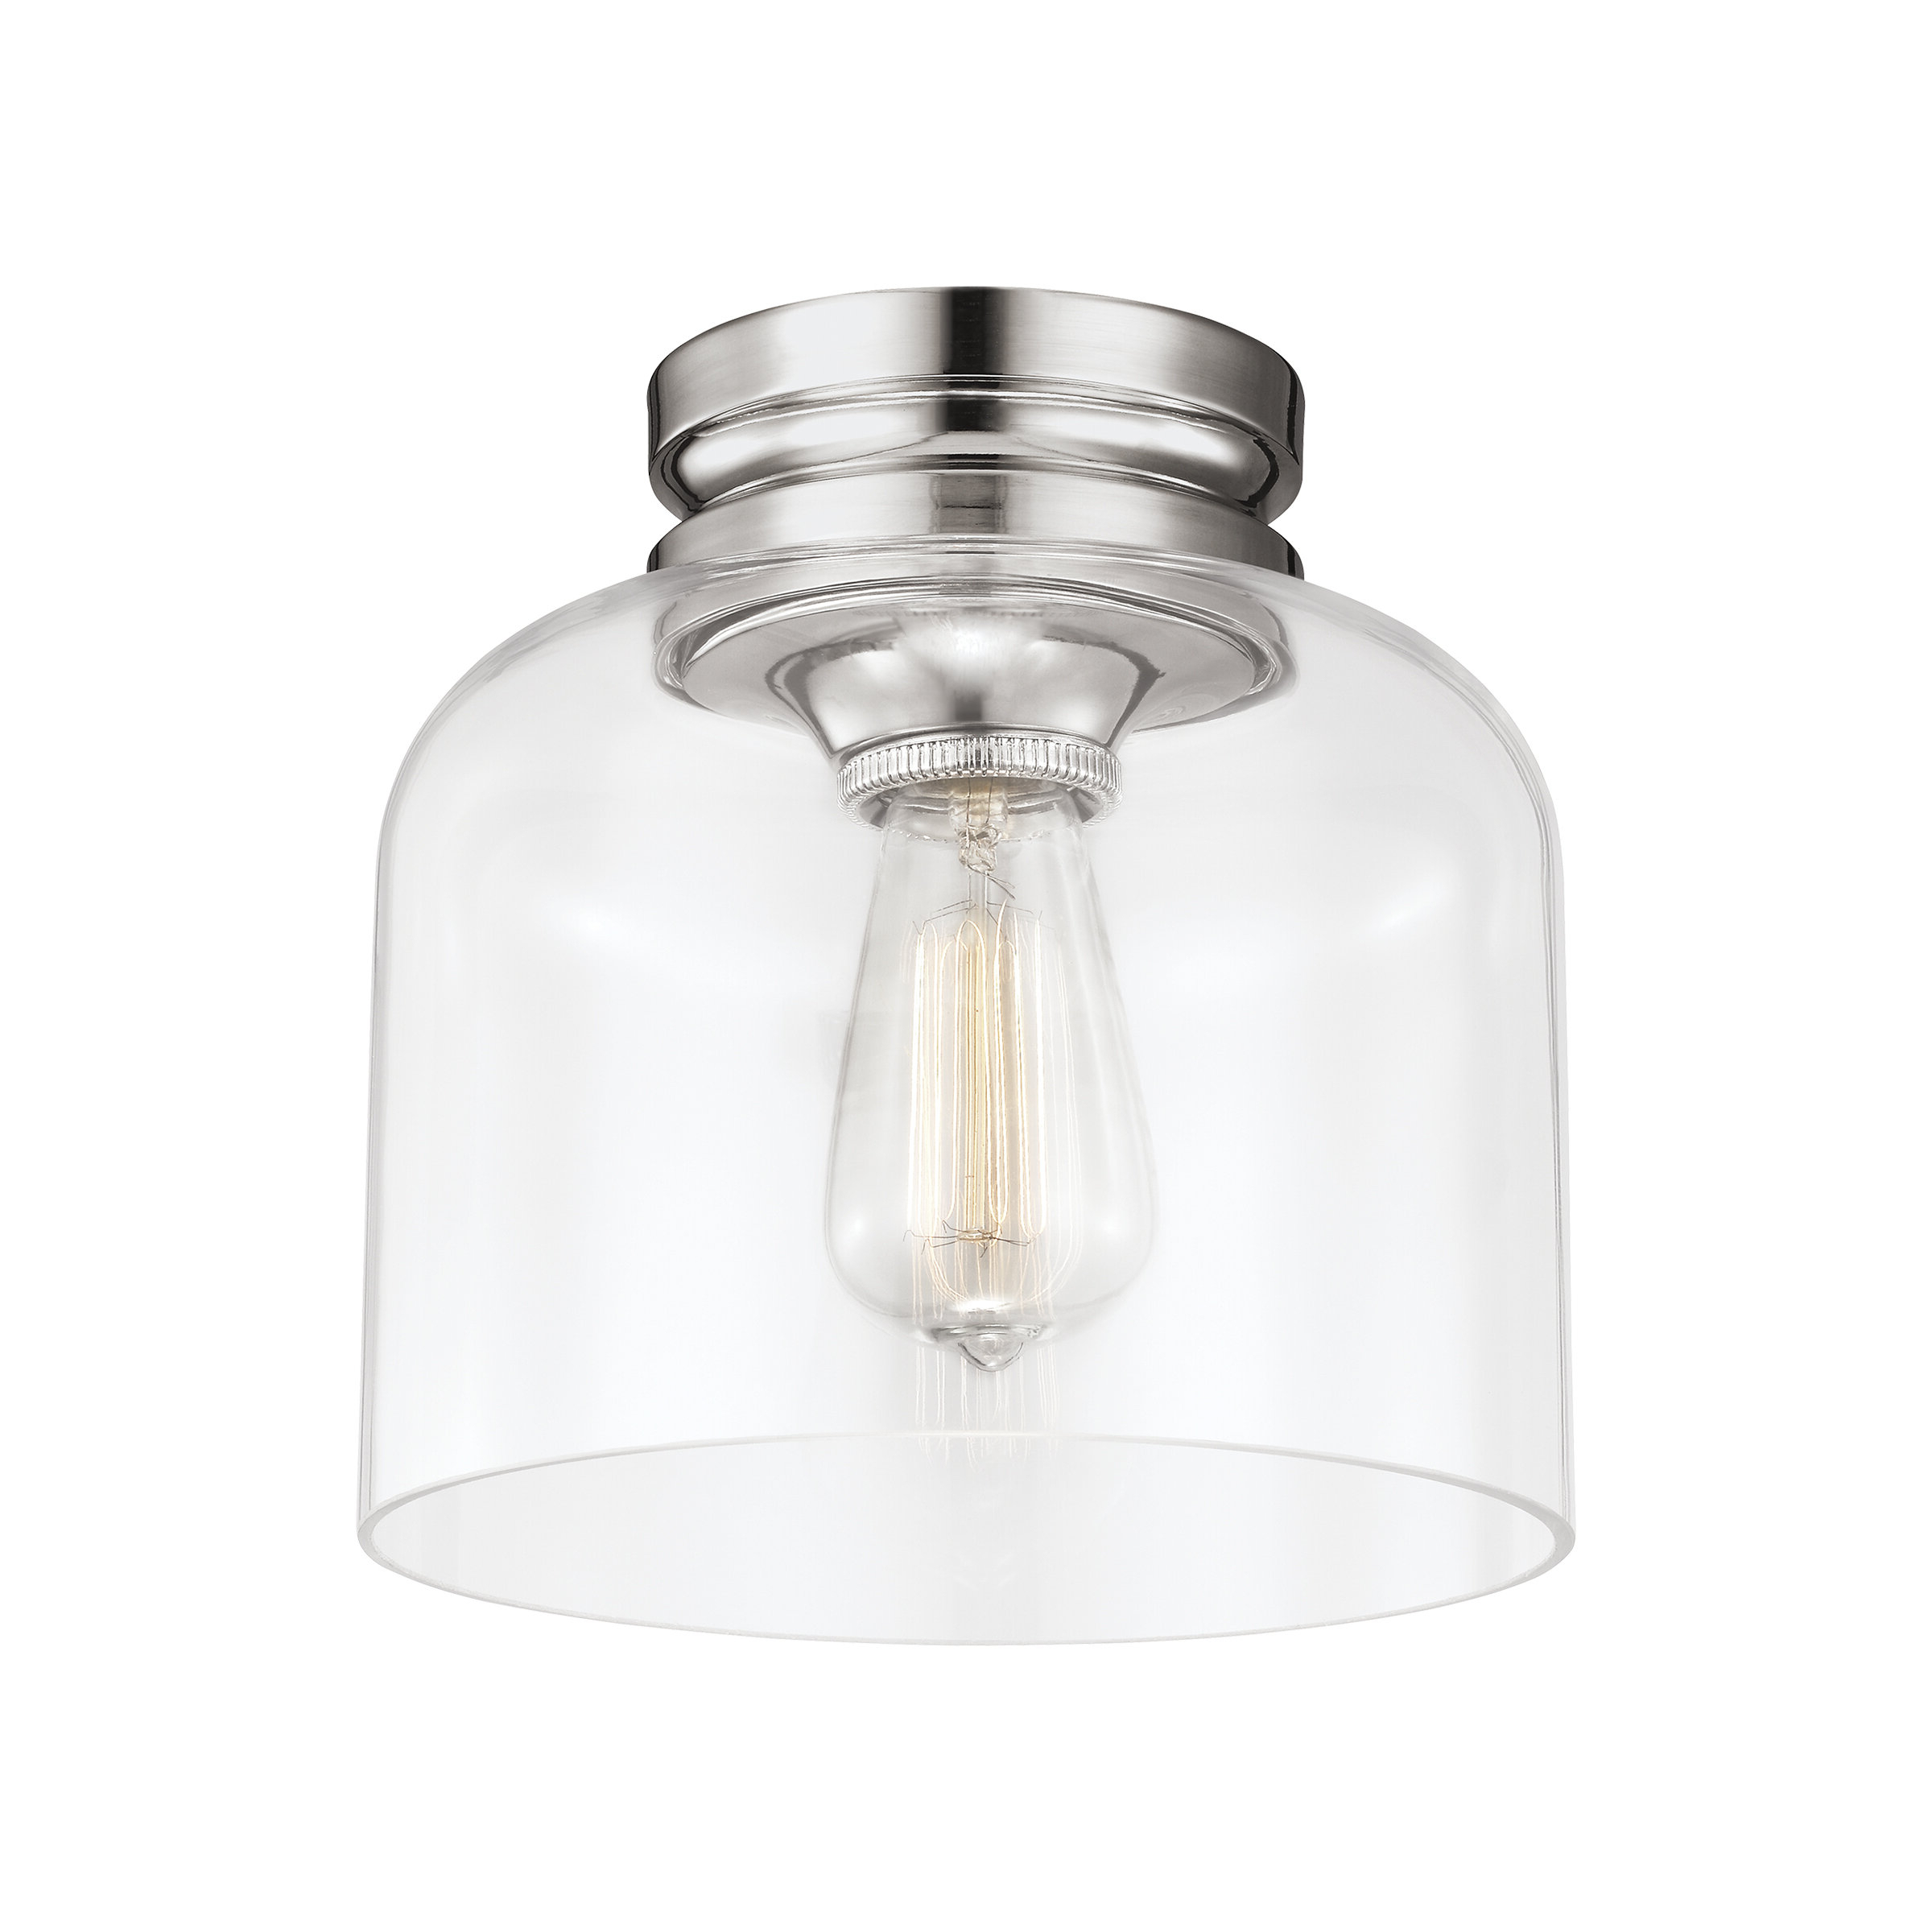 Nolan 1-Light Lantern Chandeliers pertaining to Most Up-to-Date Nolan 1-Light Semi Flush Mount